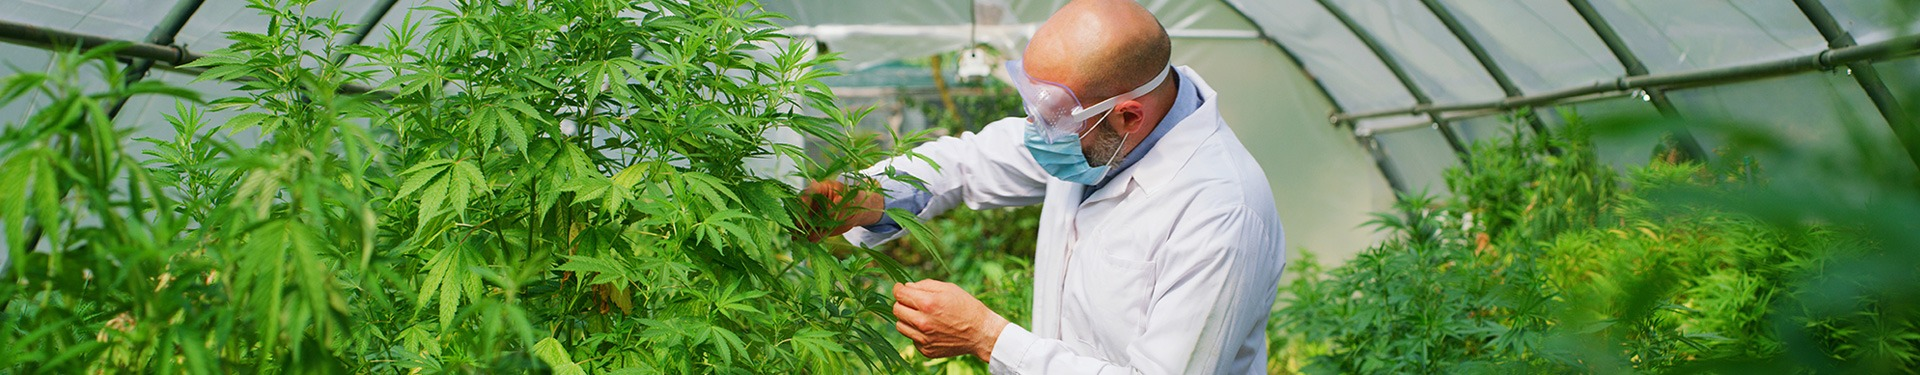 scientist with mask glasses and gloves checking hemp plants in a greenhouse used used for herbal alternative medicines and cbd oil production. - Medical Products